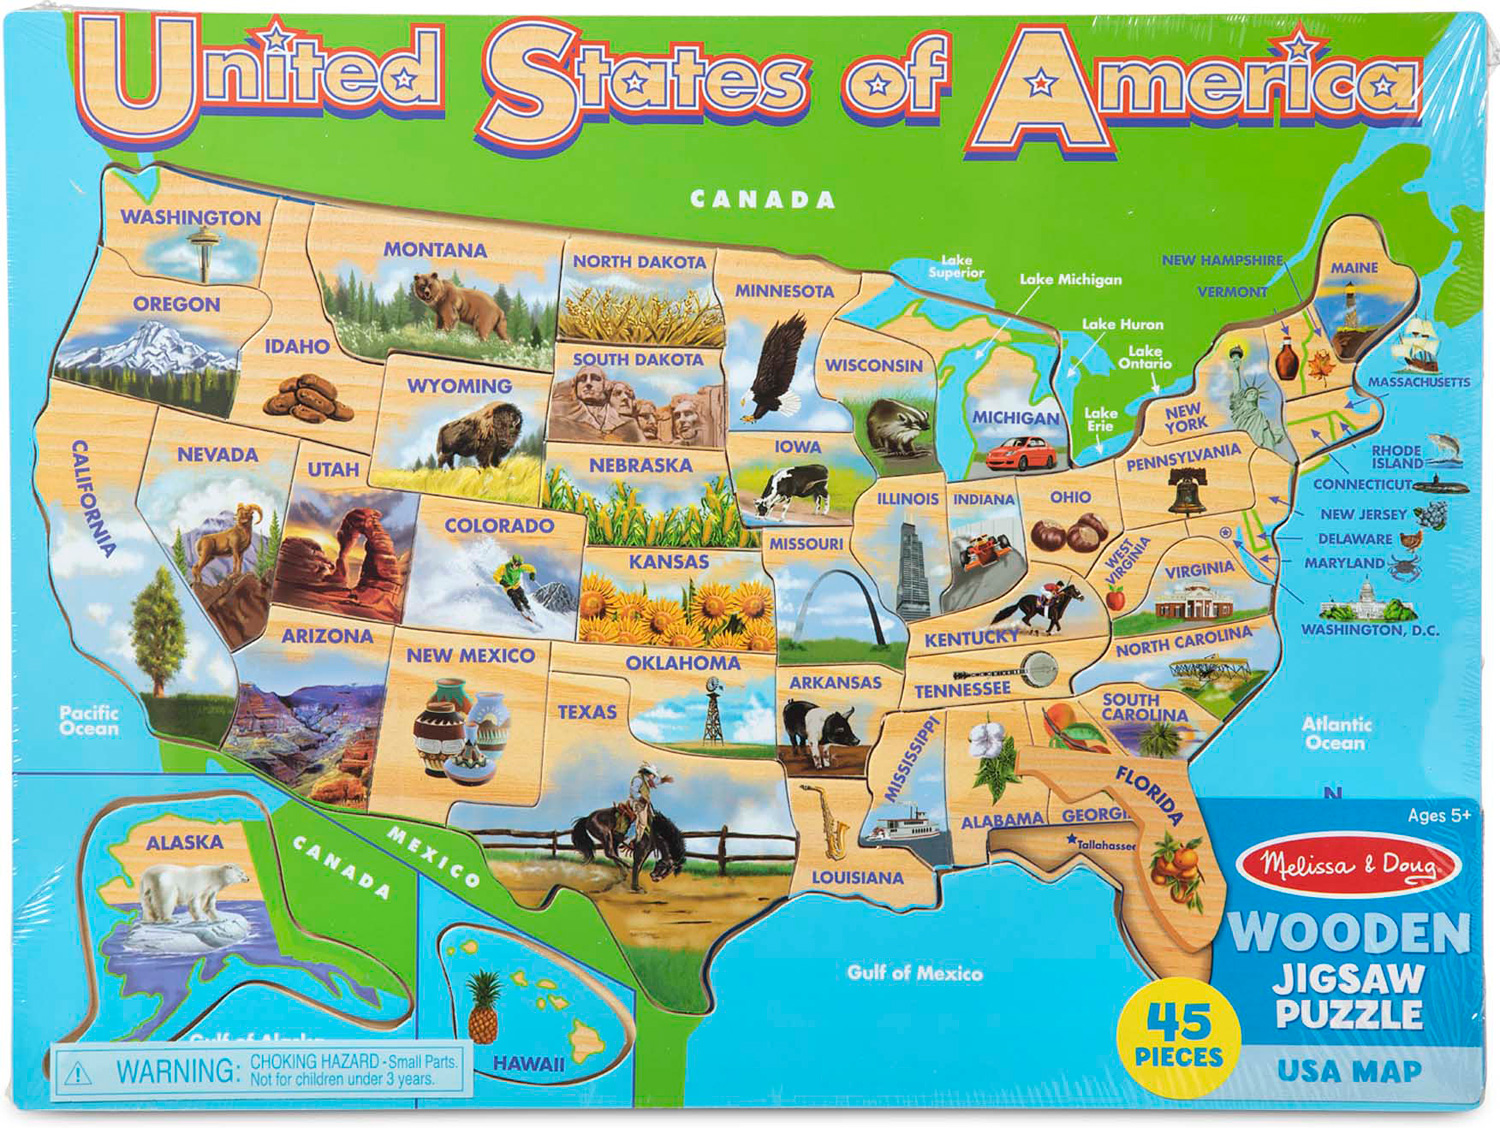 USA Map Frame Puzzle Naturally Curious Kids - United states map picture frame